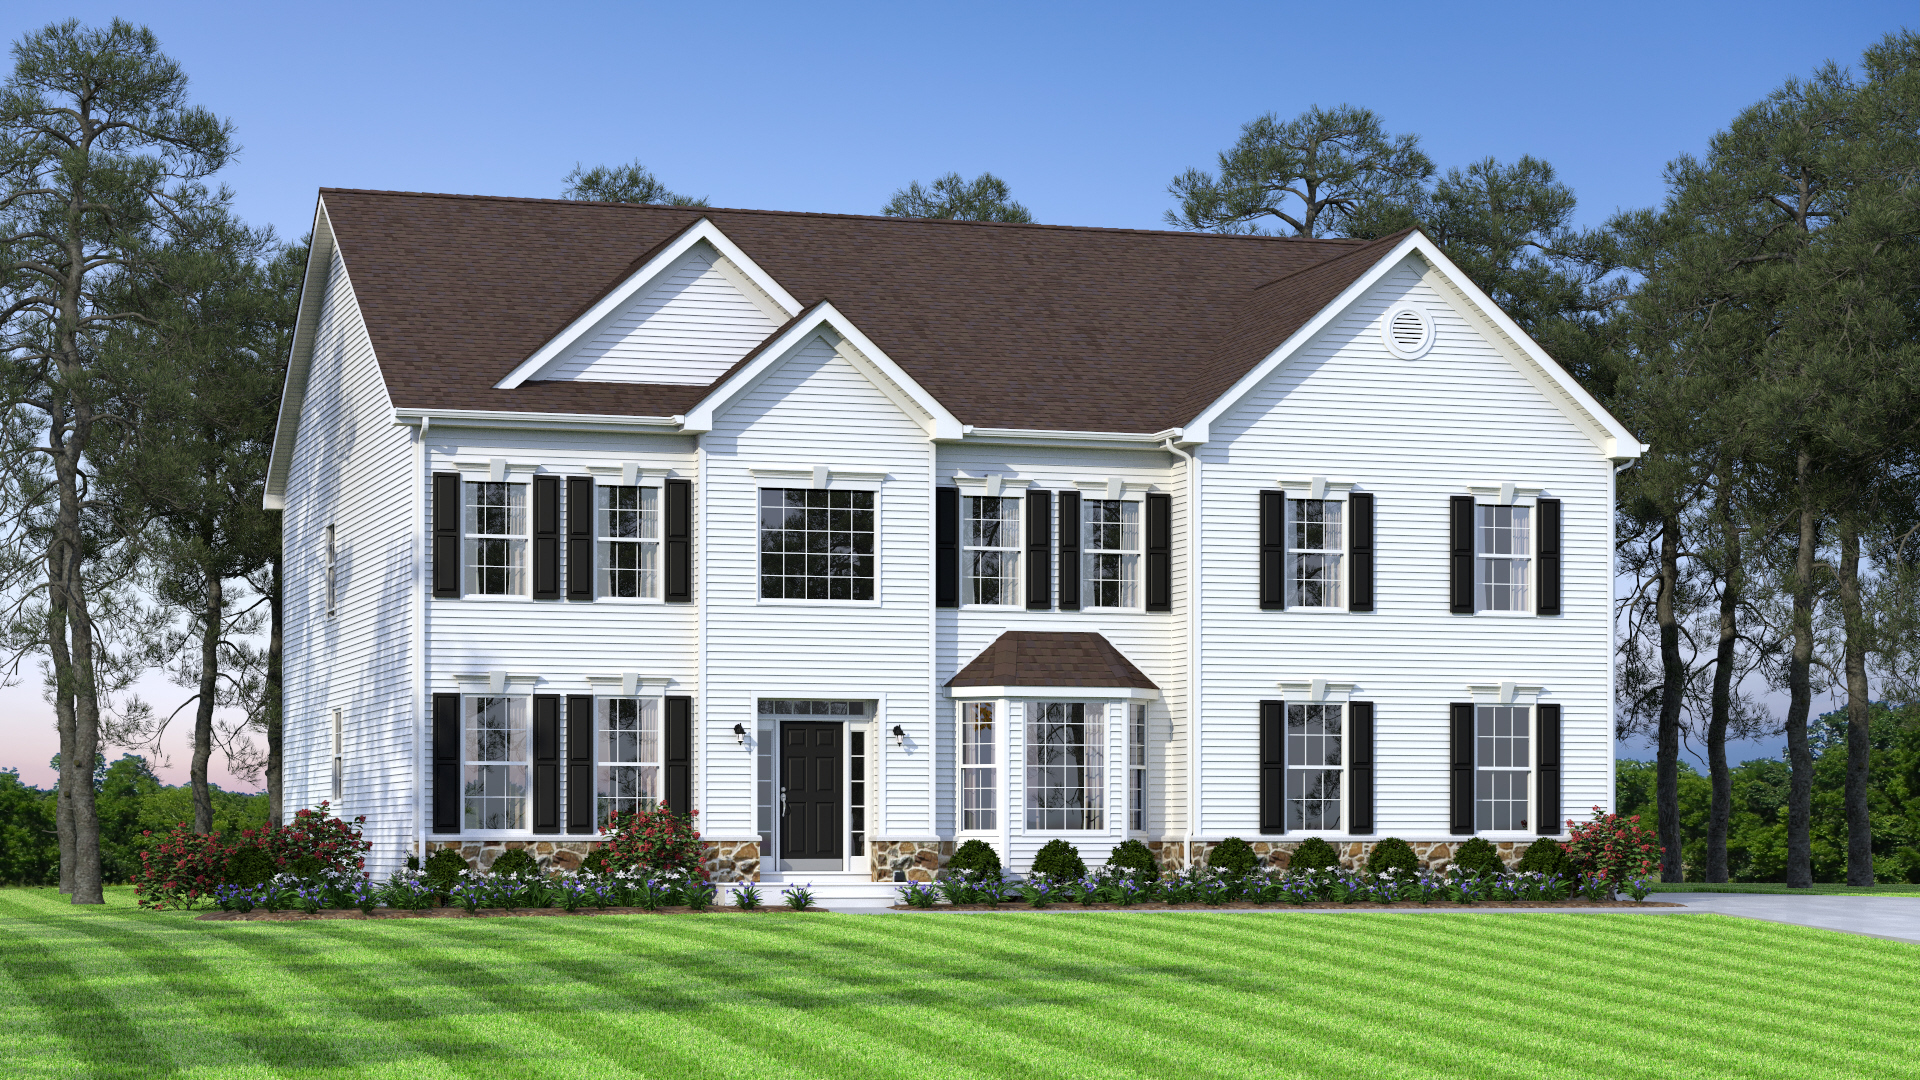 The Brandywine  3,700 sf / 4 br / 2.5 ba / 2 car garage Starting at $361,990